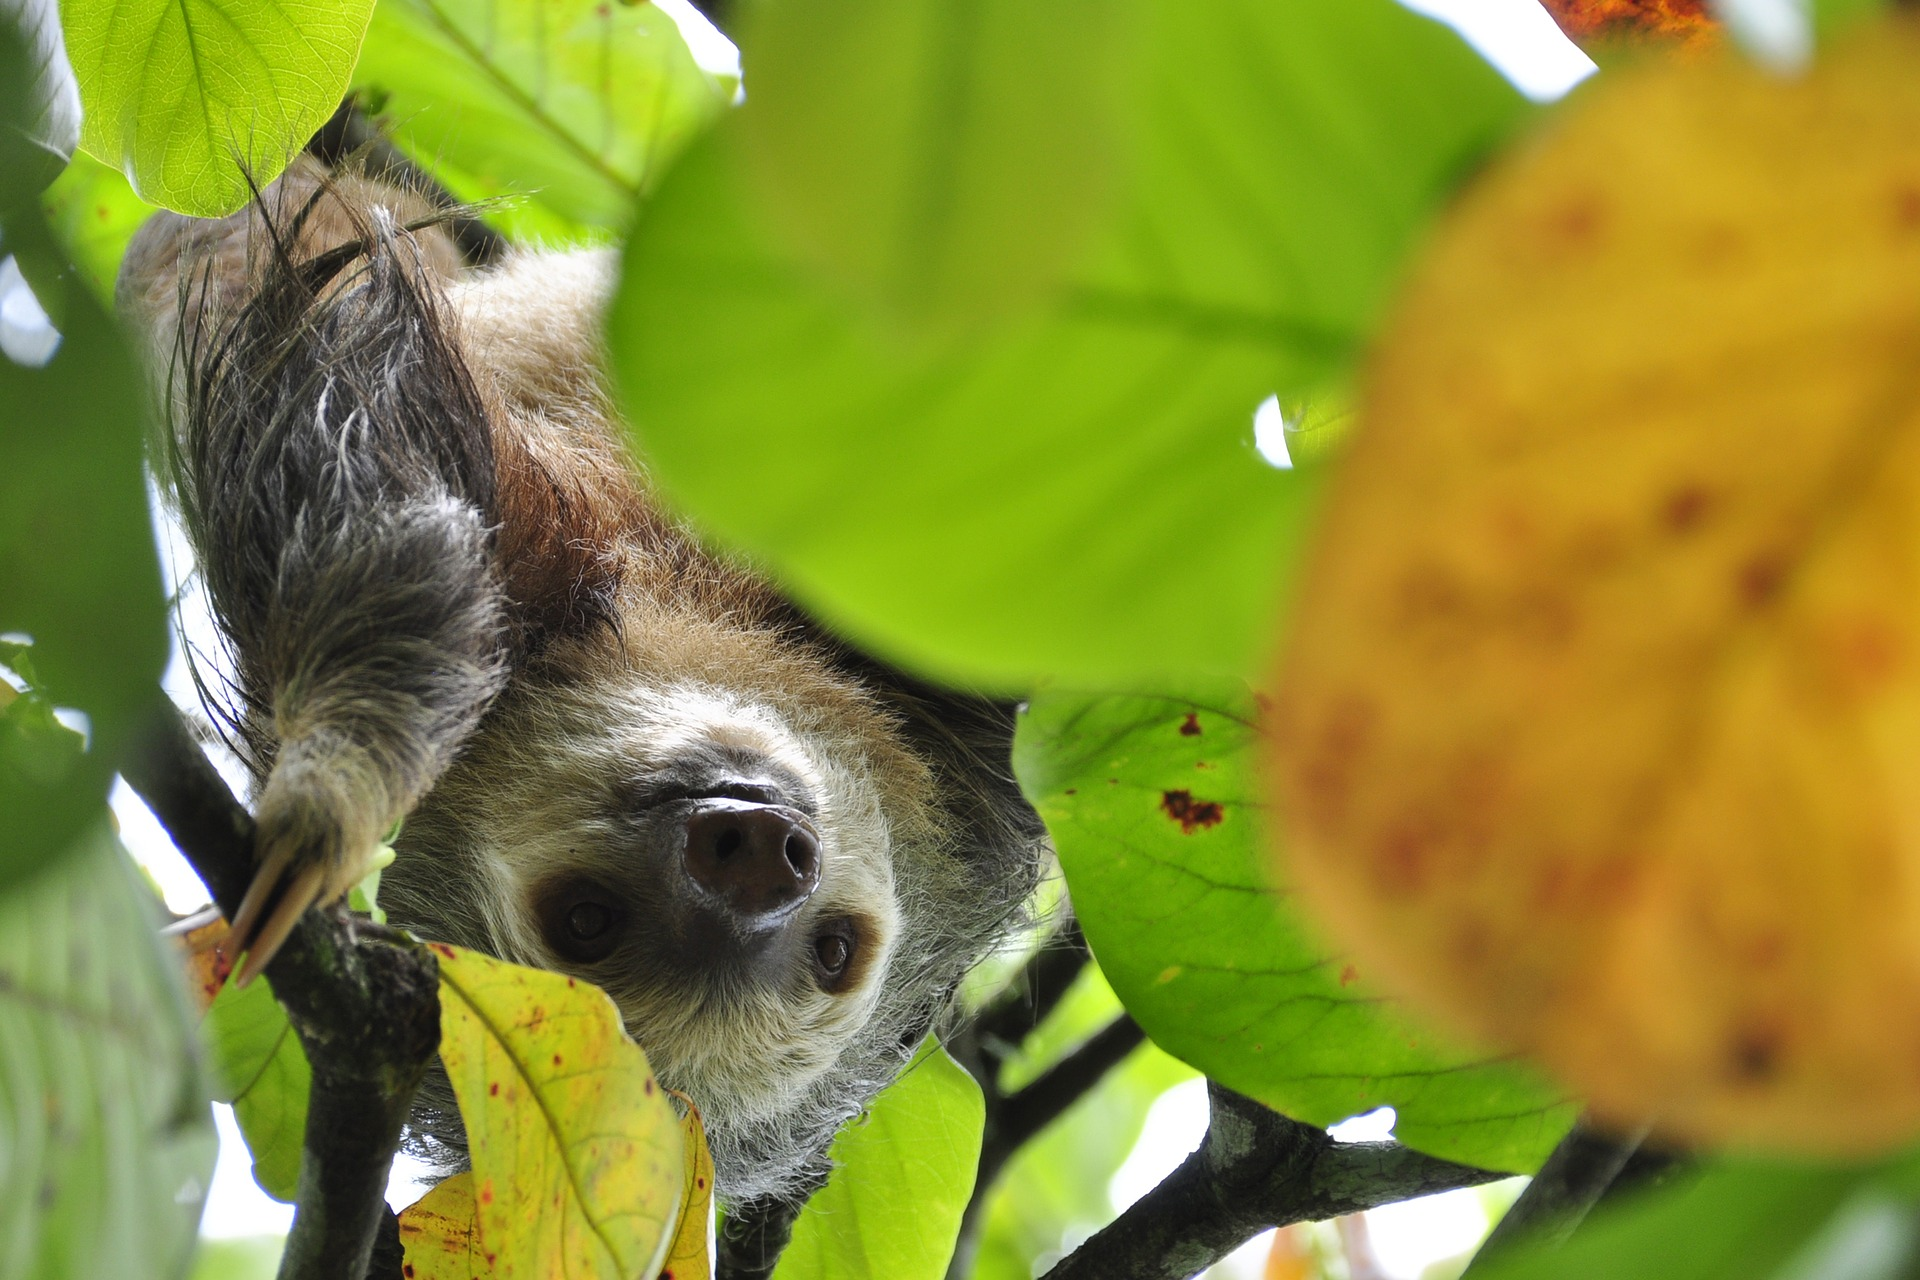 This Week In Paleo: 5 Lessons Learned From Sloths